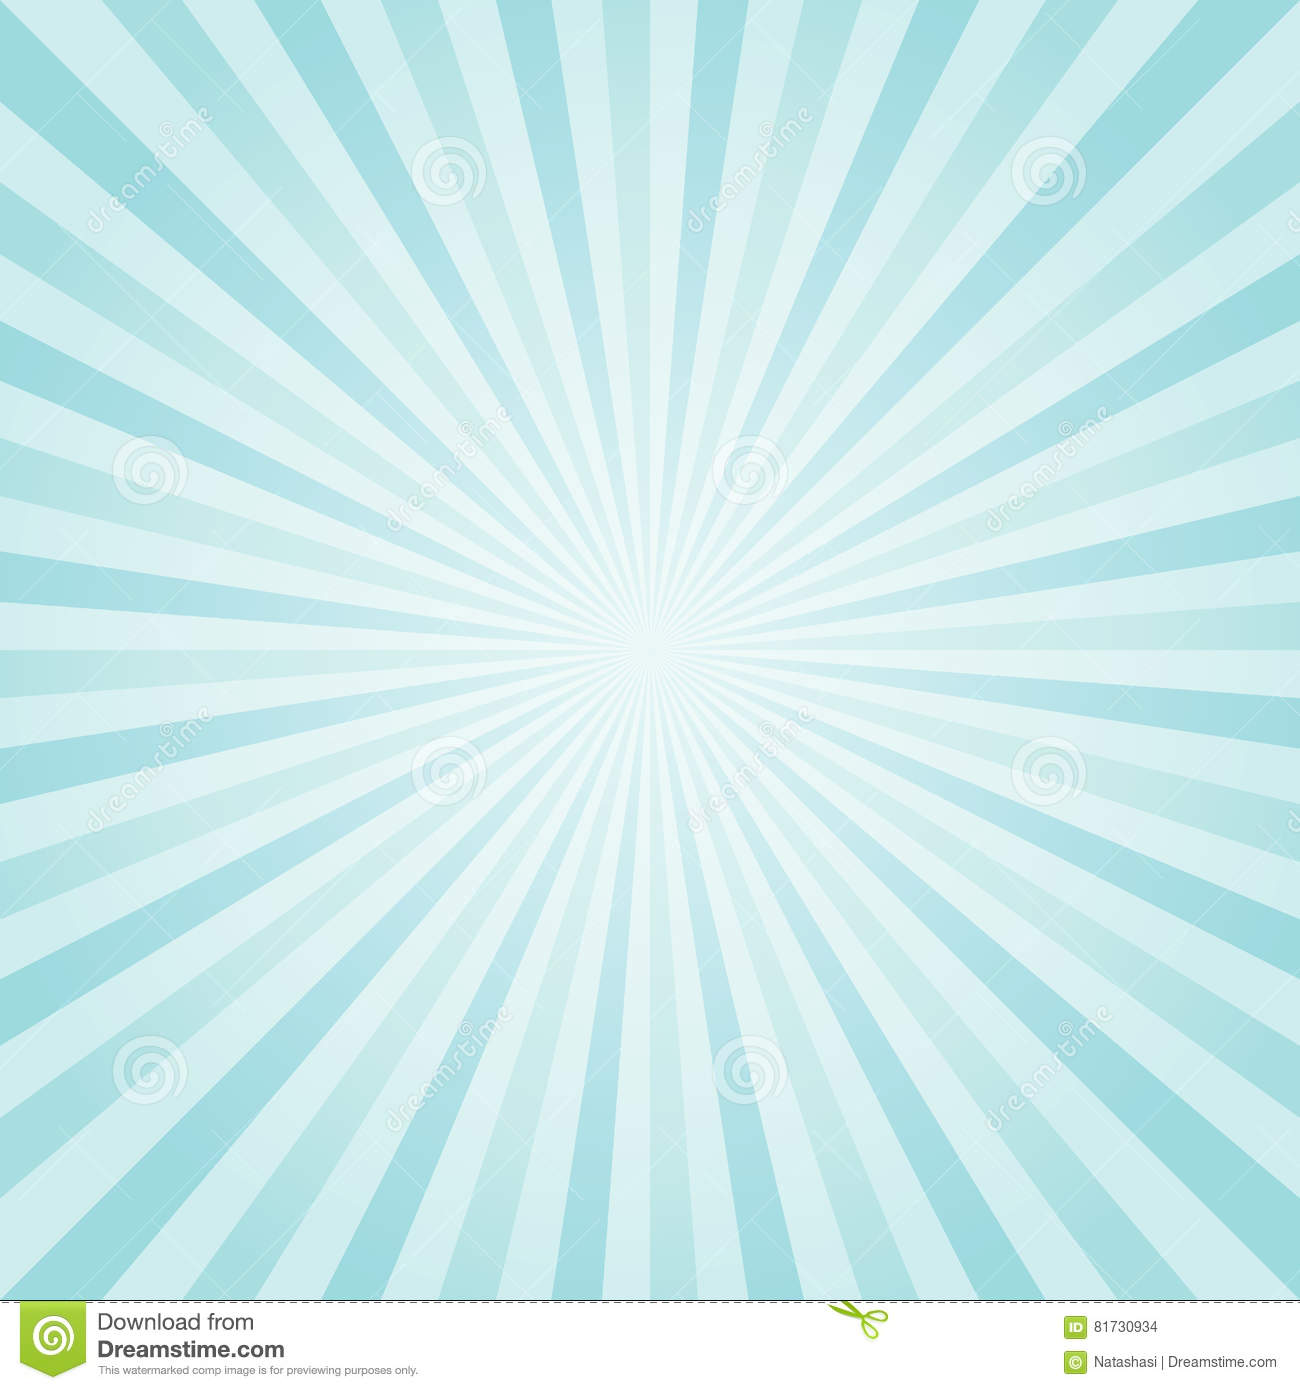 Abstract light Blue Turquoise rays background. Vector